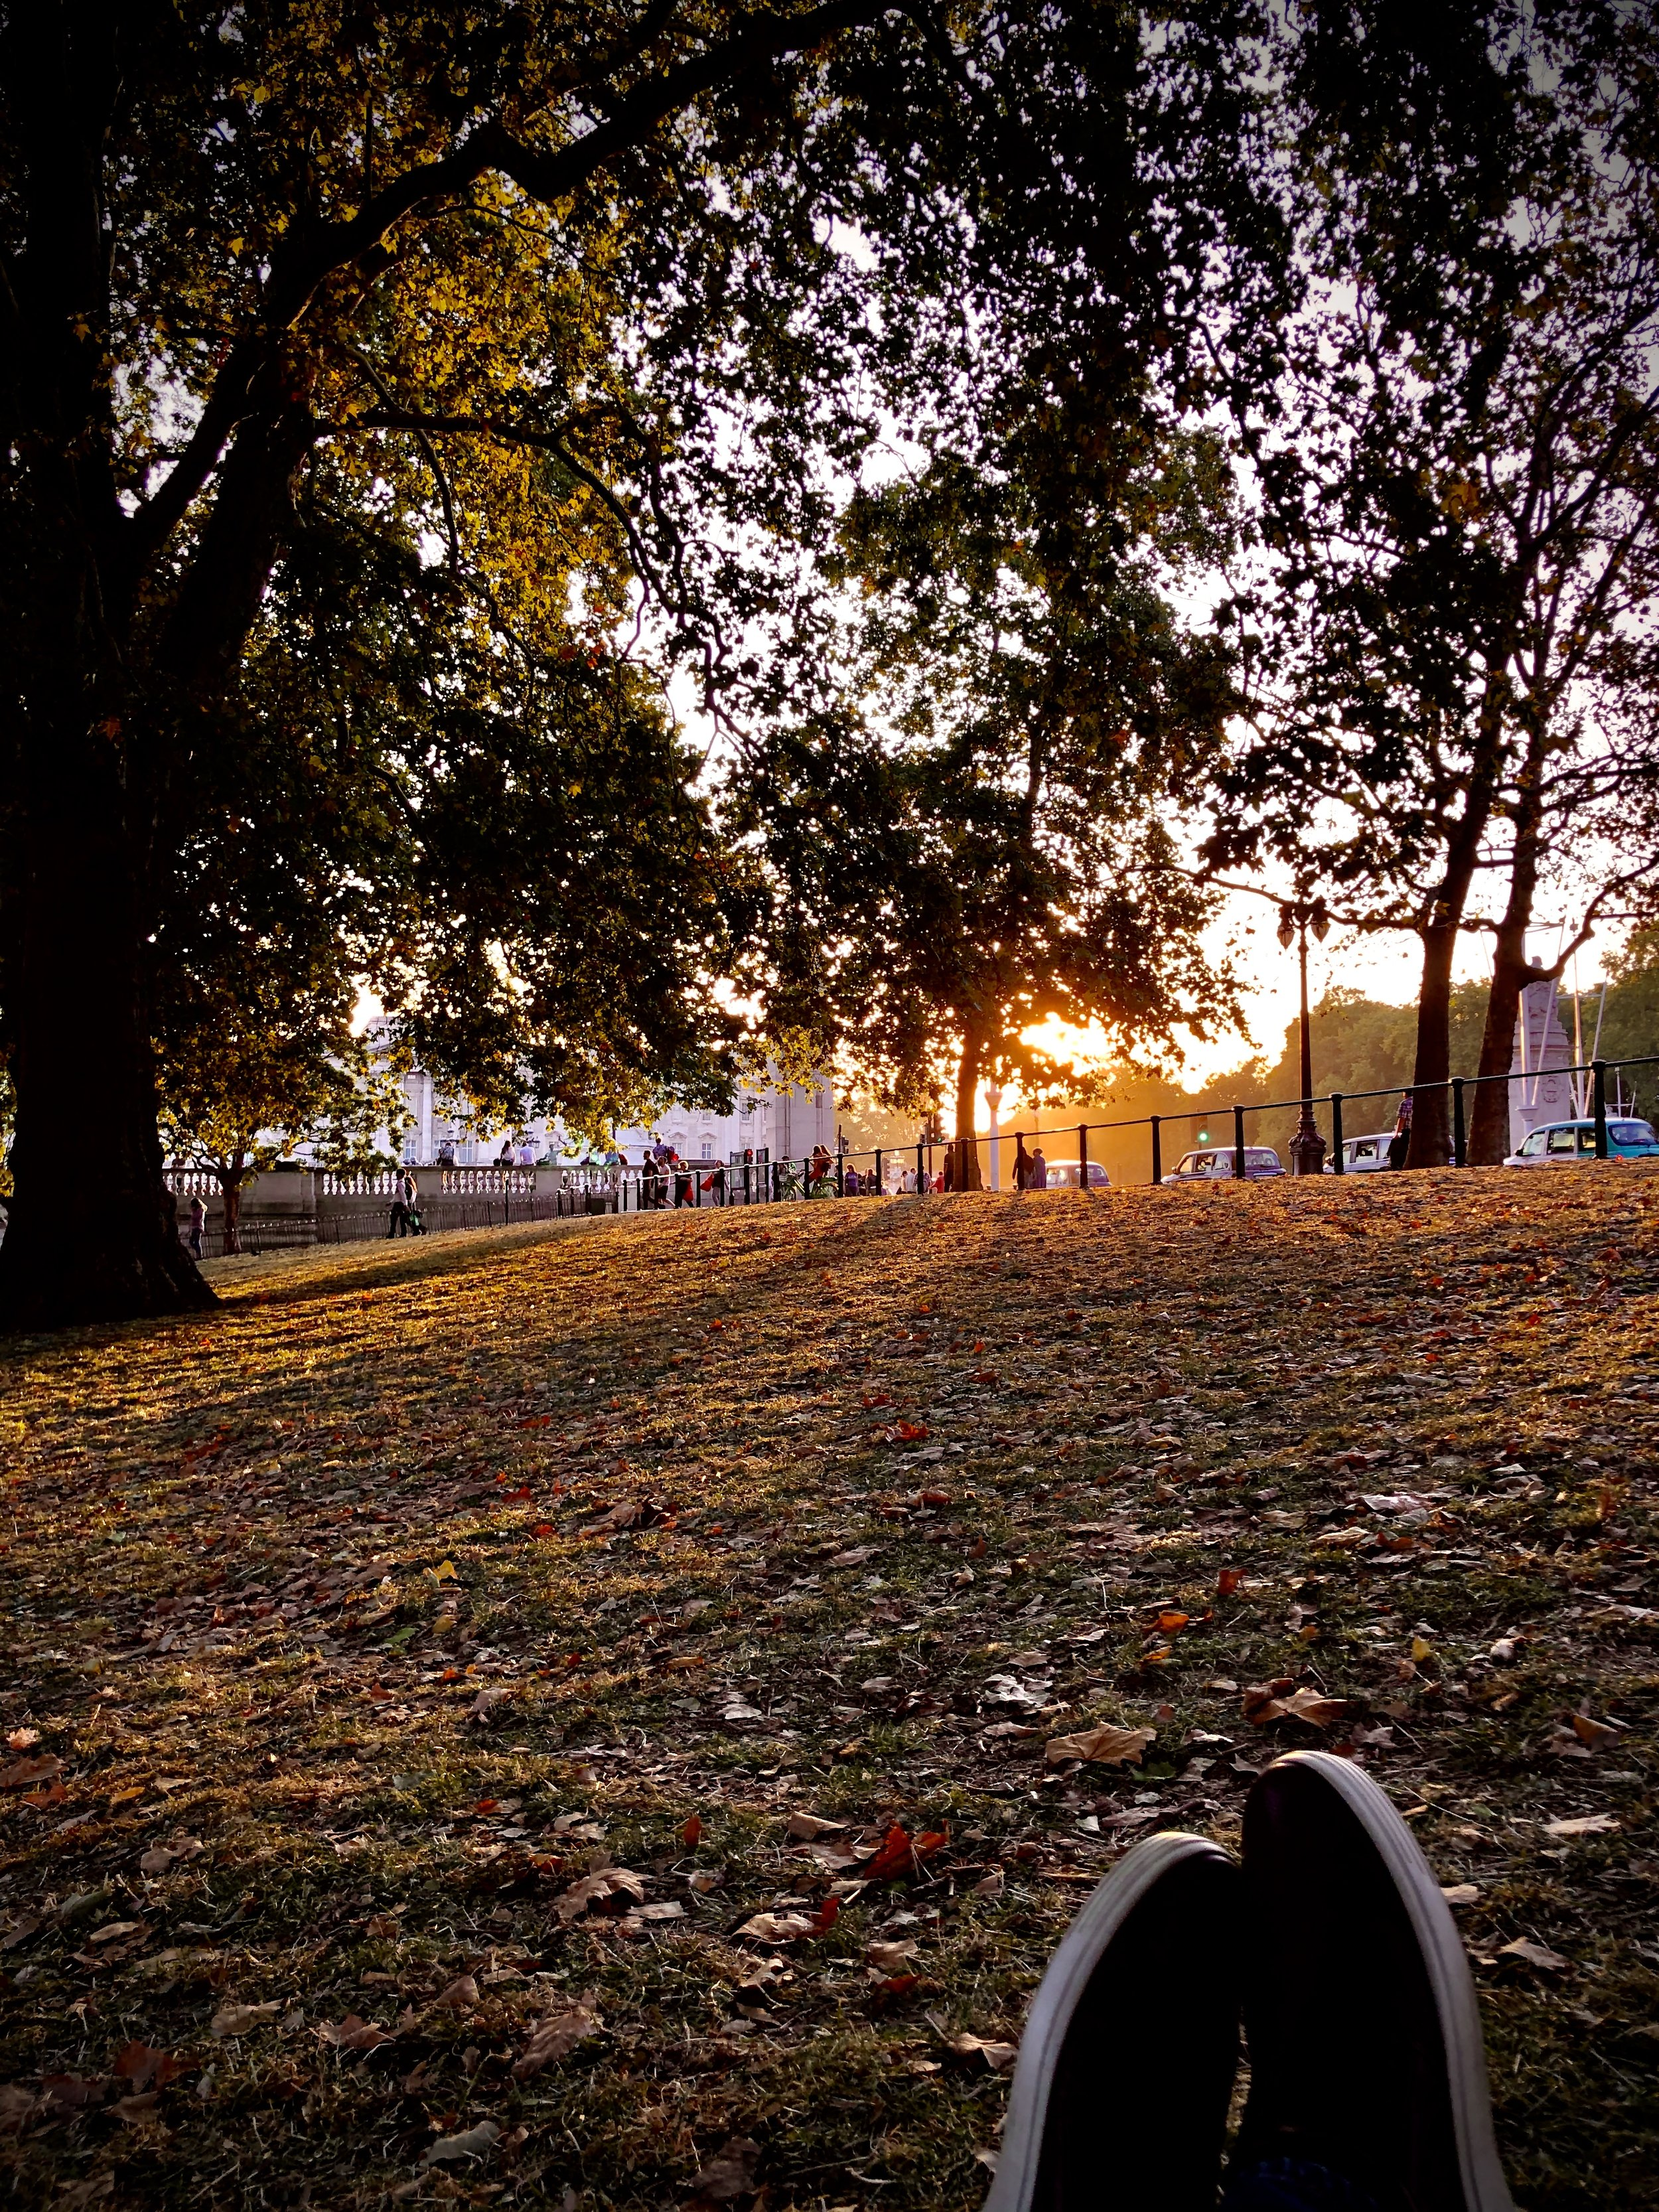 The start of autumn, viewed from St. James' Park